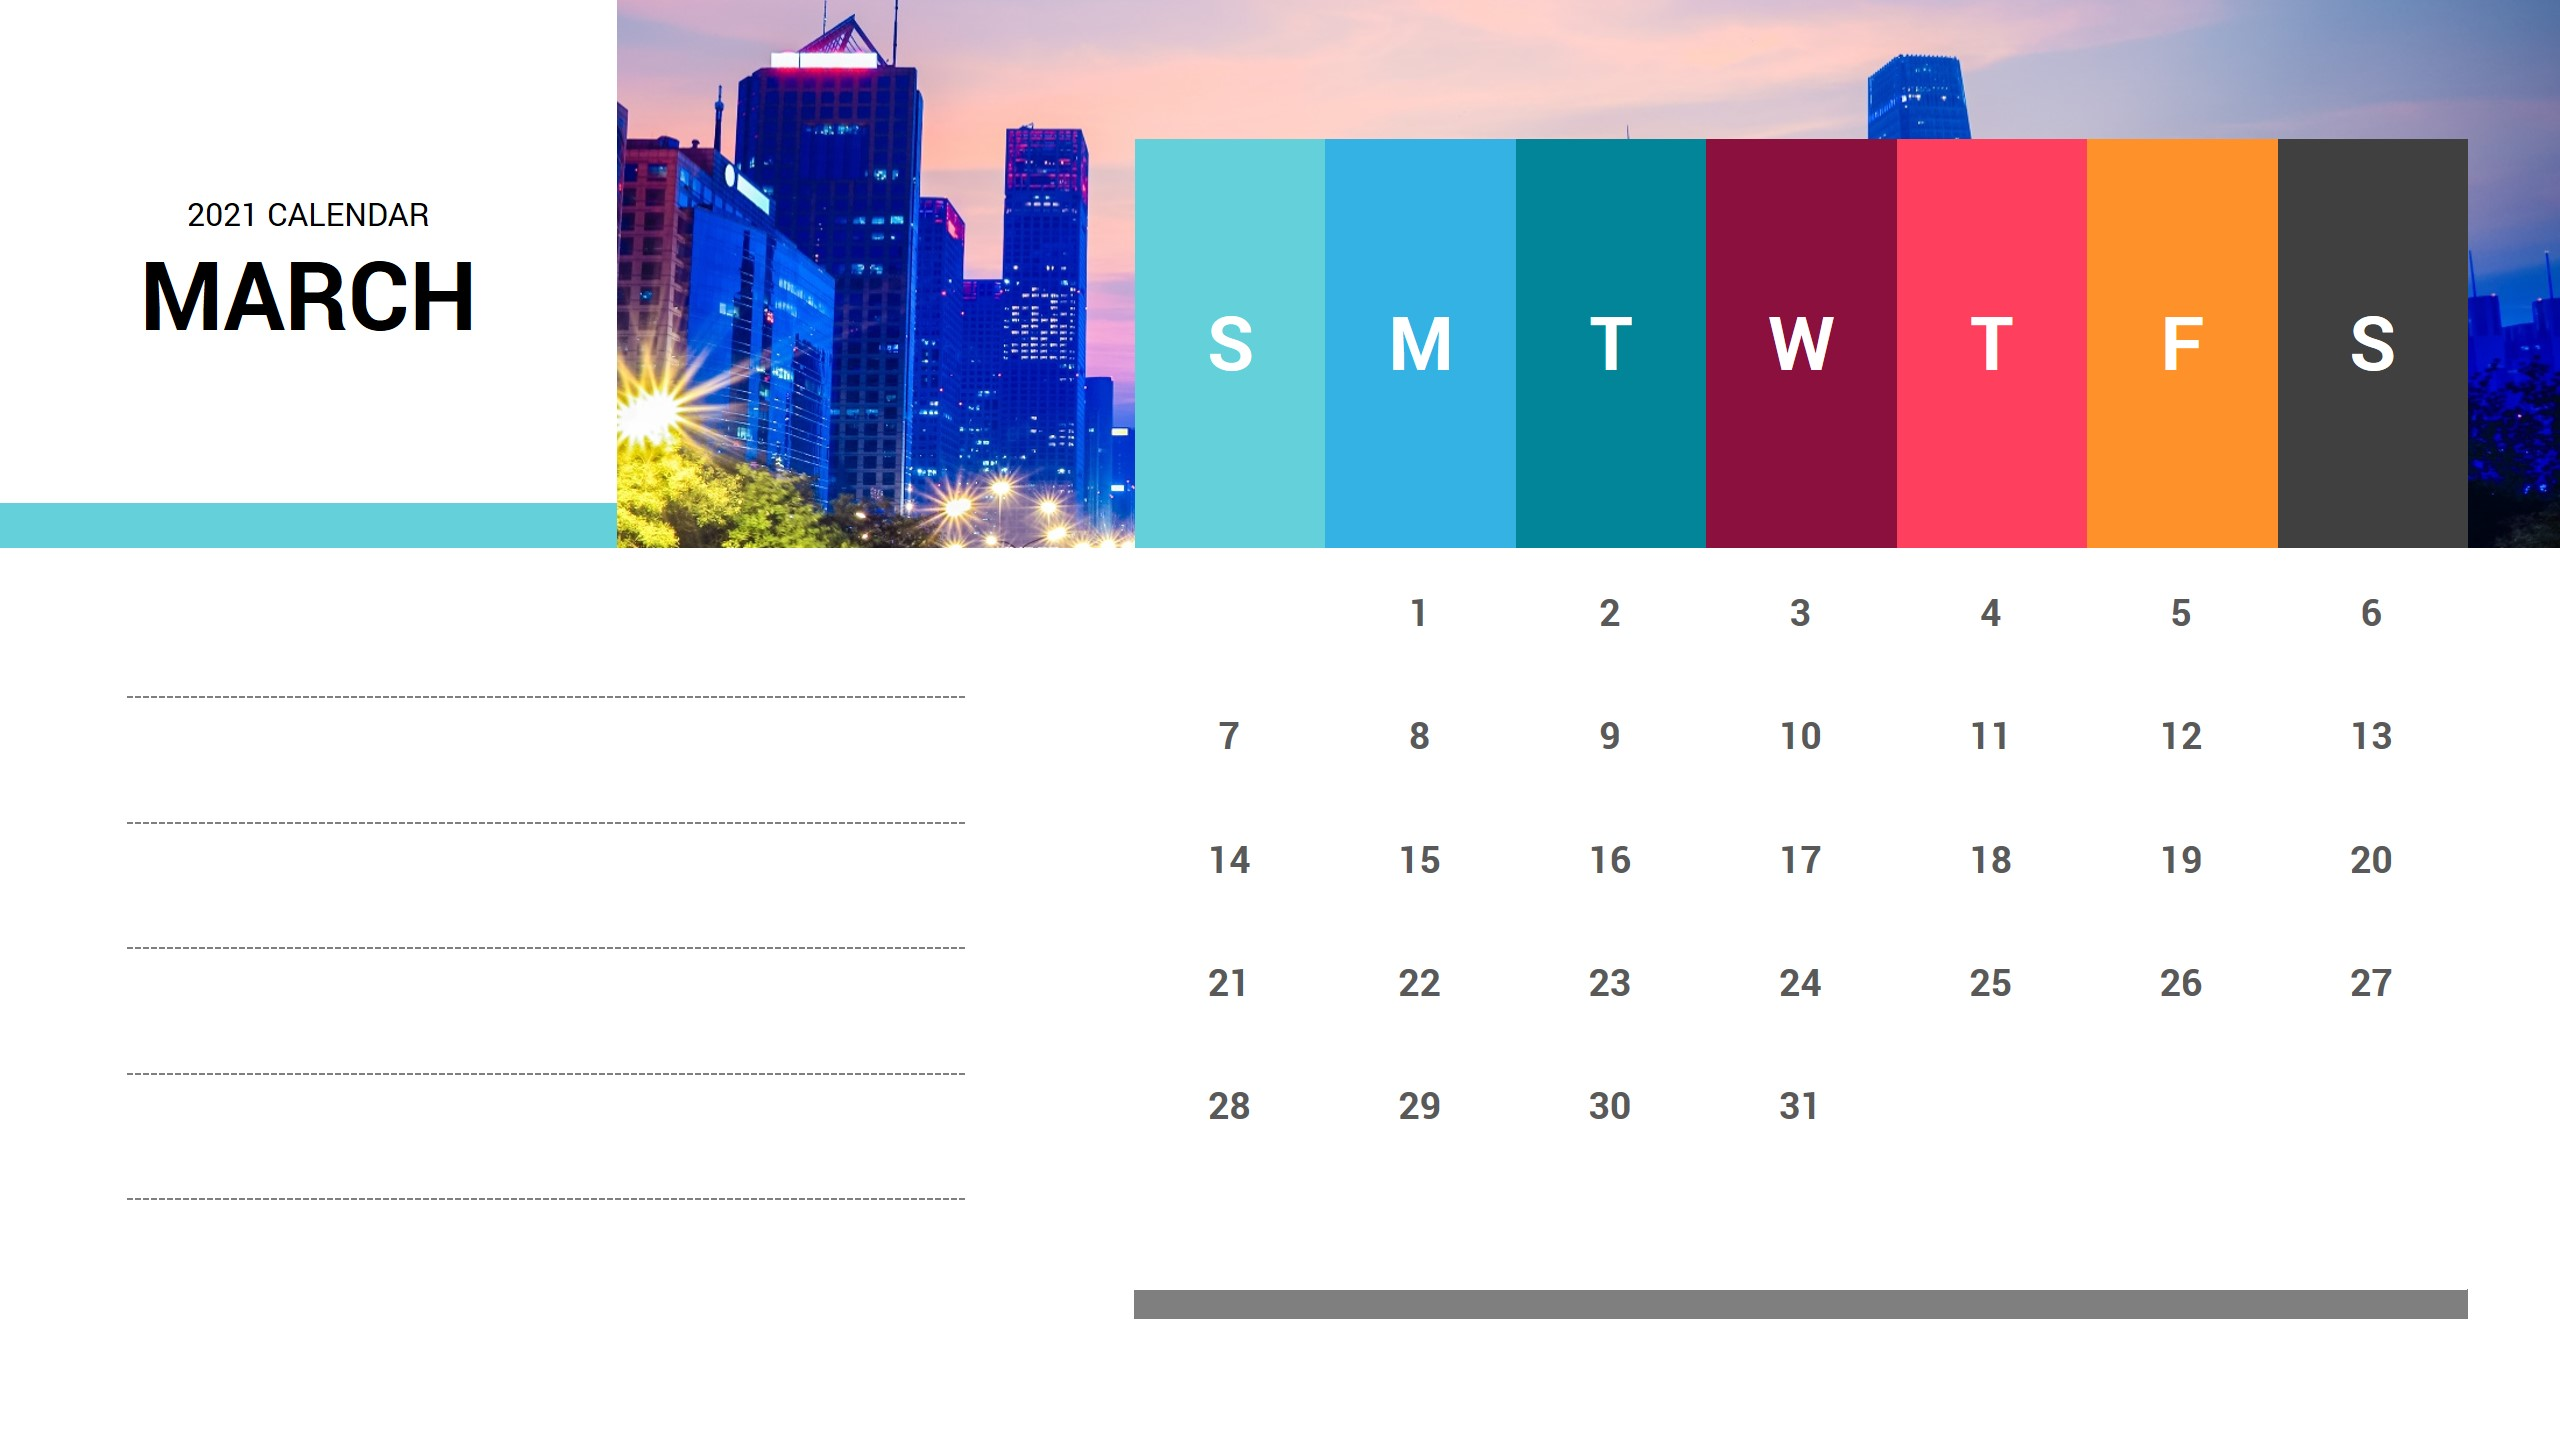 March 2021 Calendar PowerPoint Template